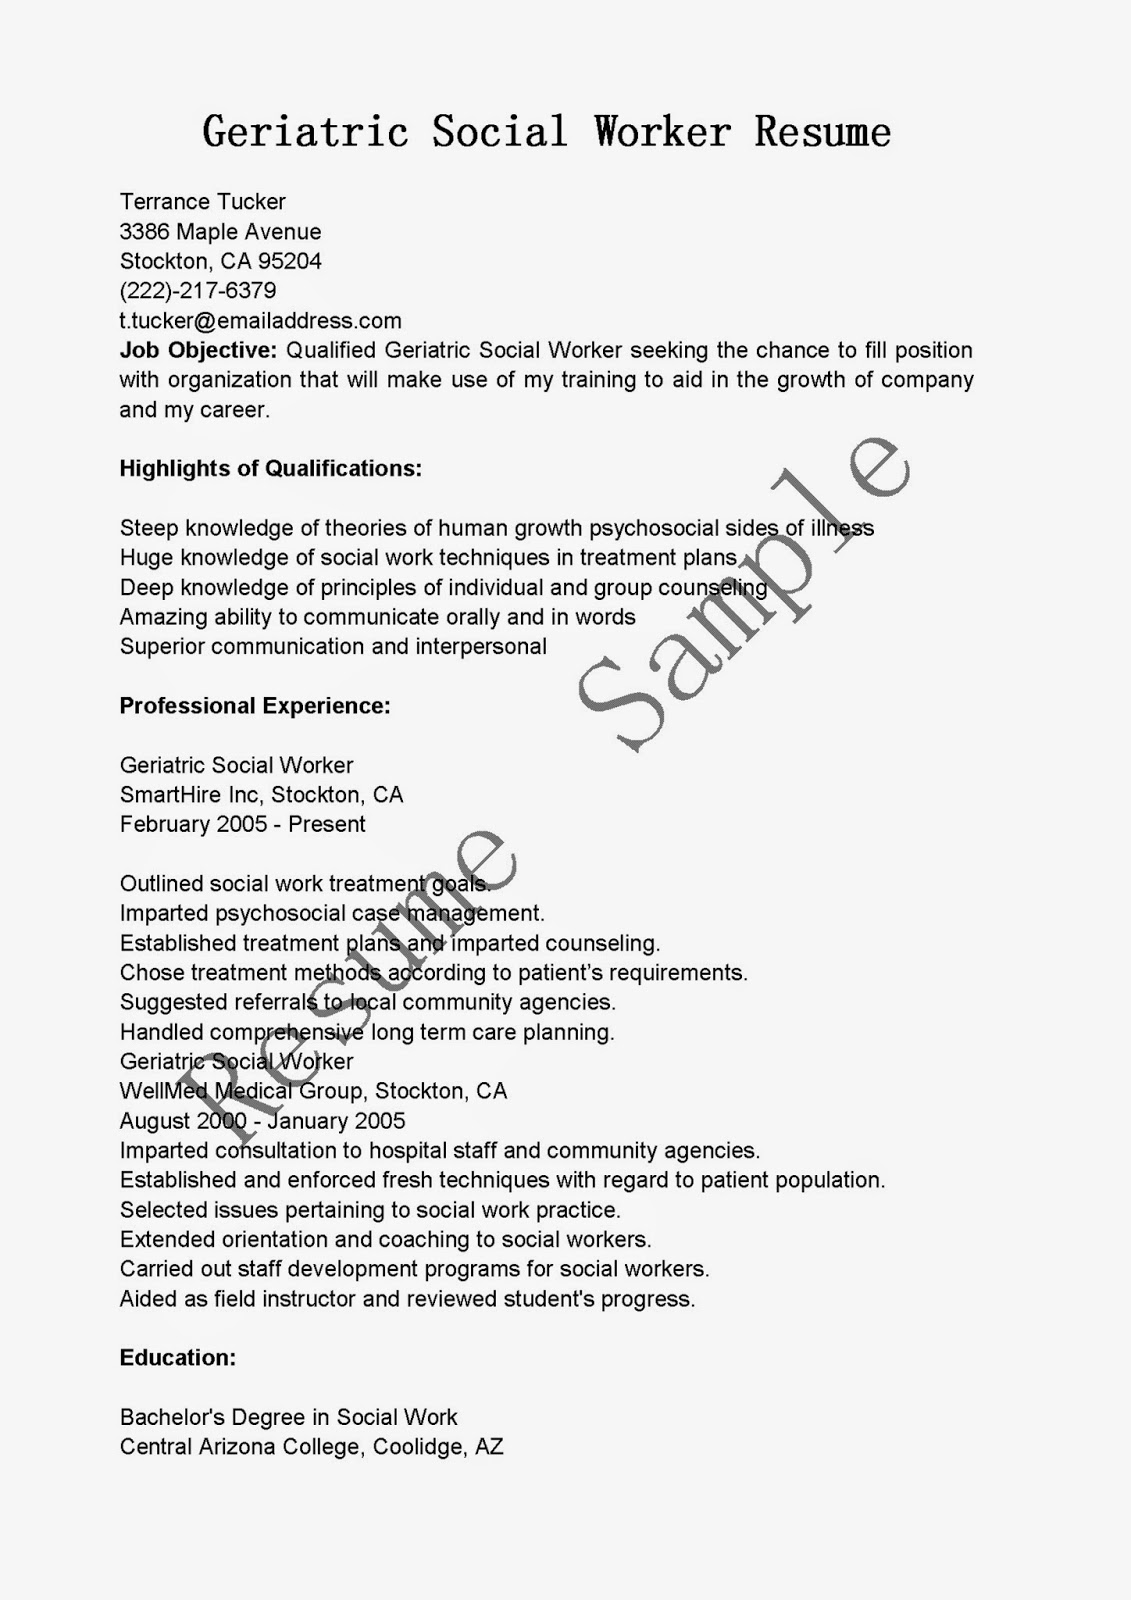 sample geriatric social worker resume